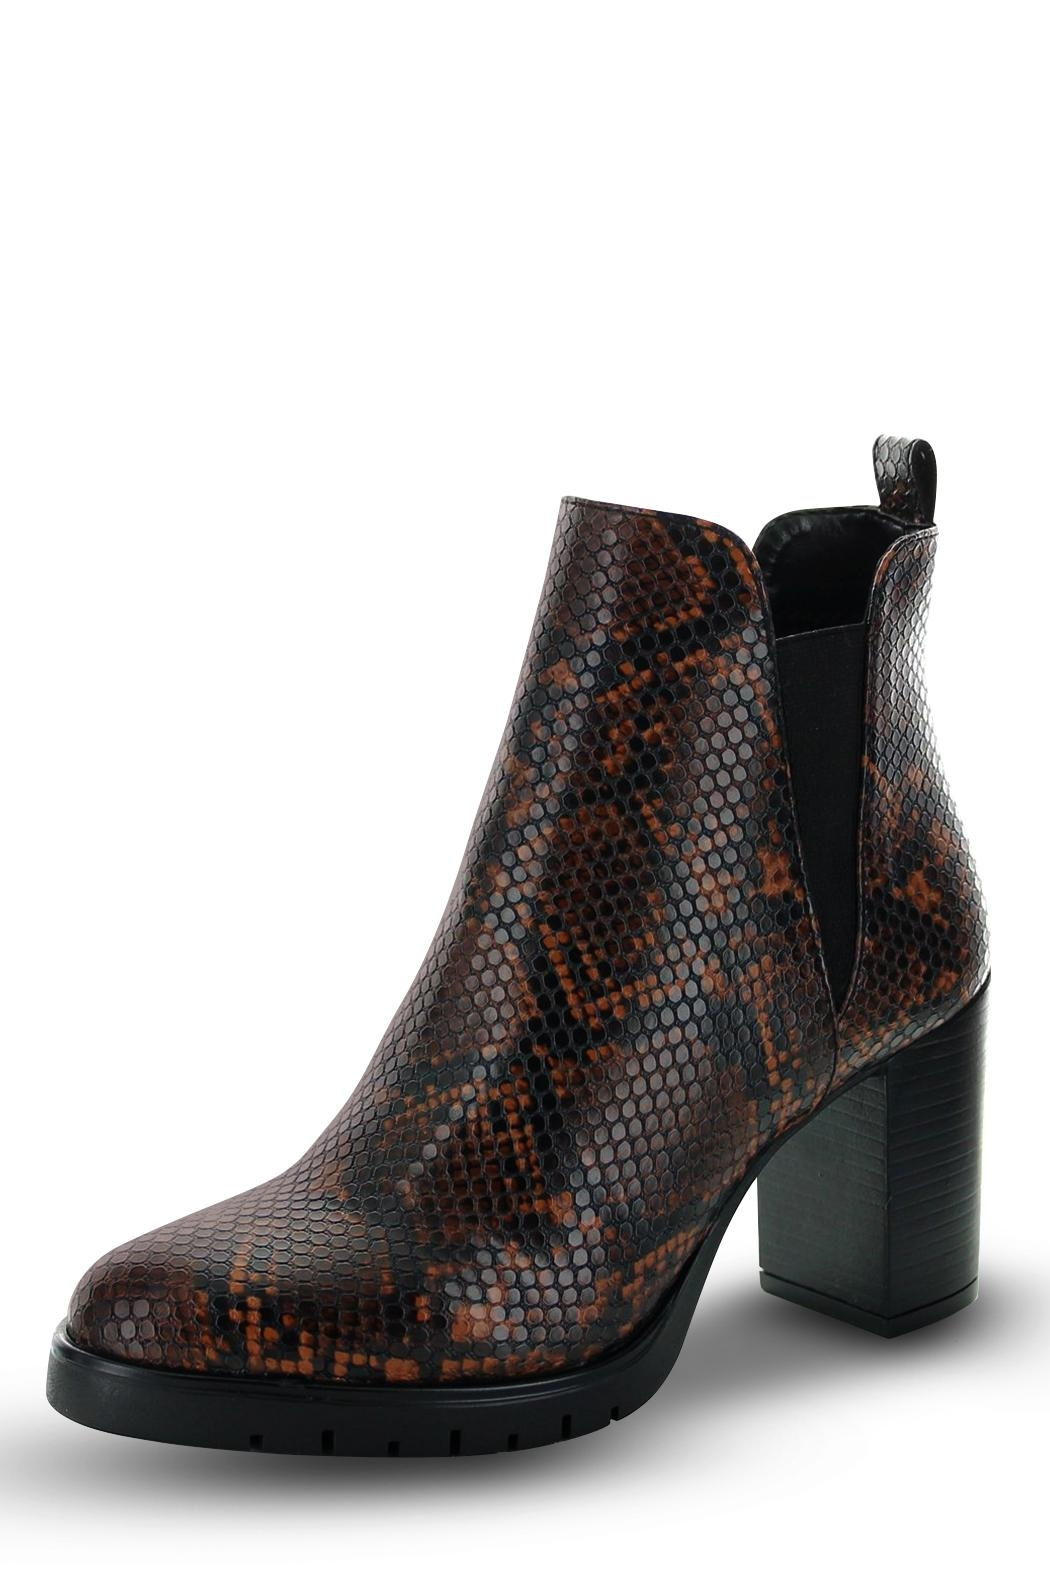 Morkas Shoes Ankle Bootie Brown Snake Etched - Main Image